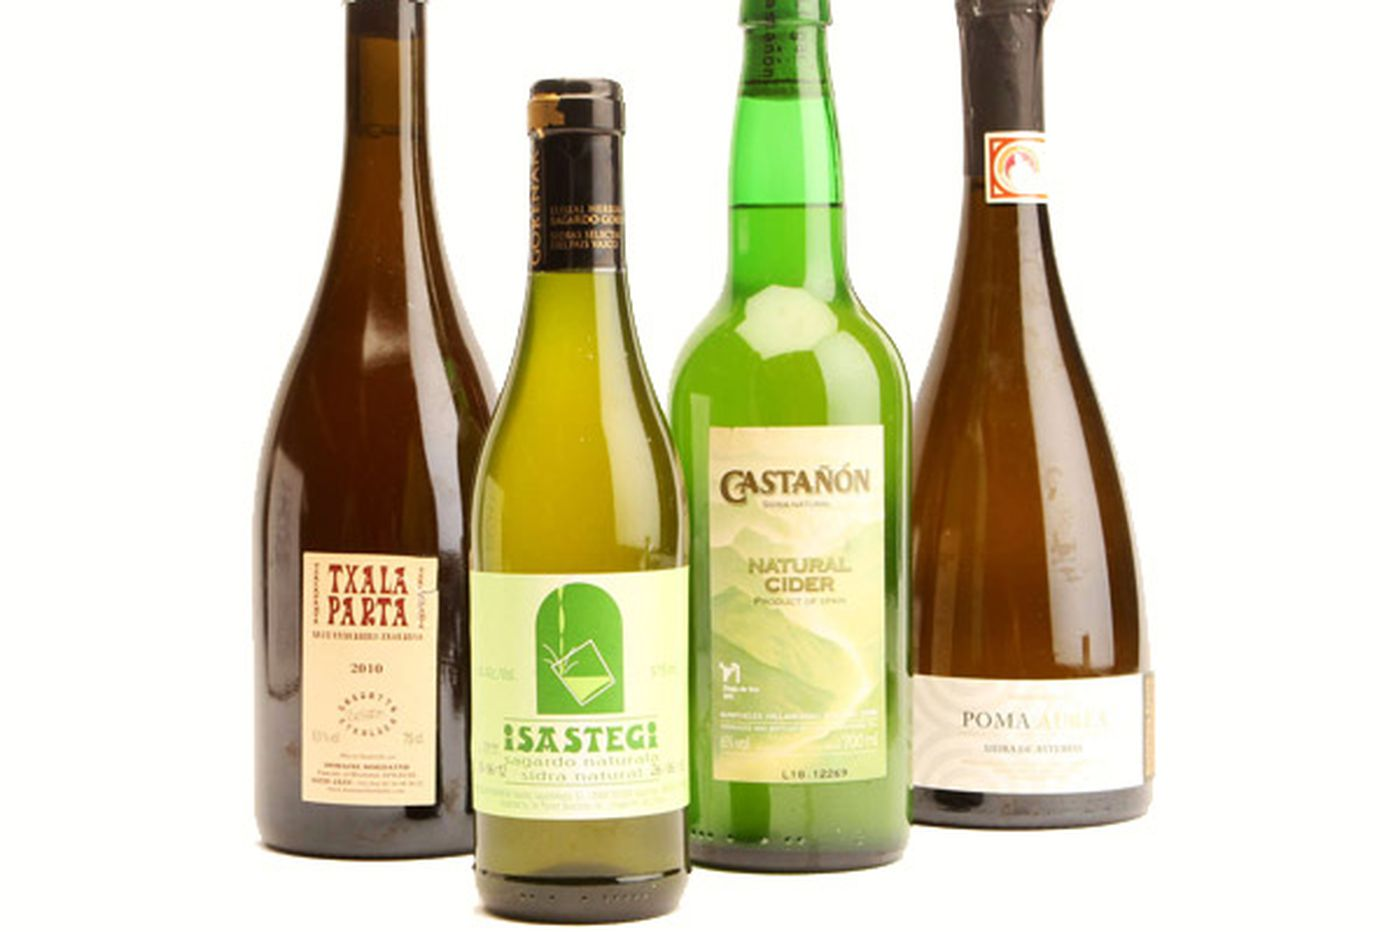 Ciders of the Basque country and Asturias